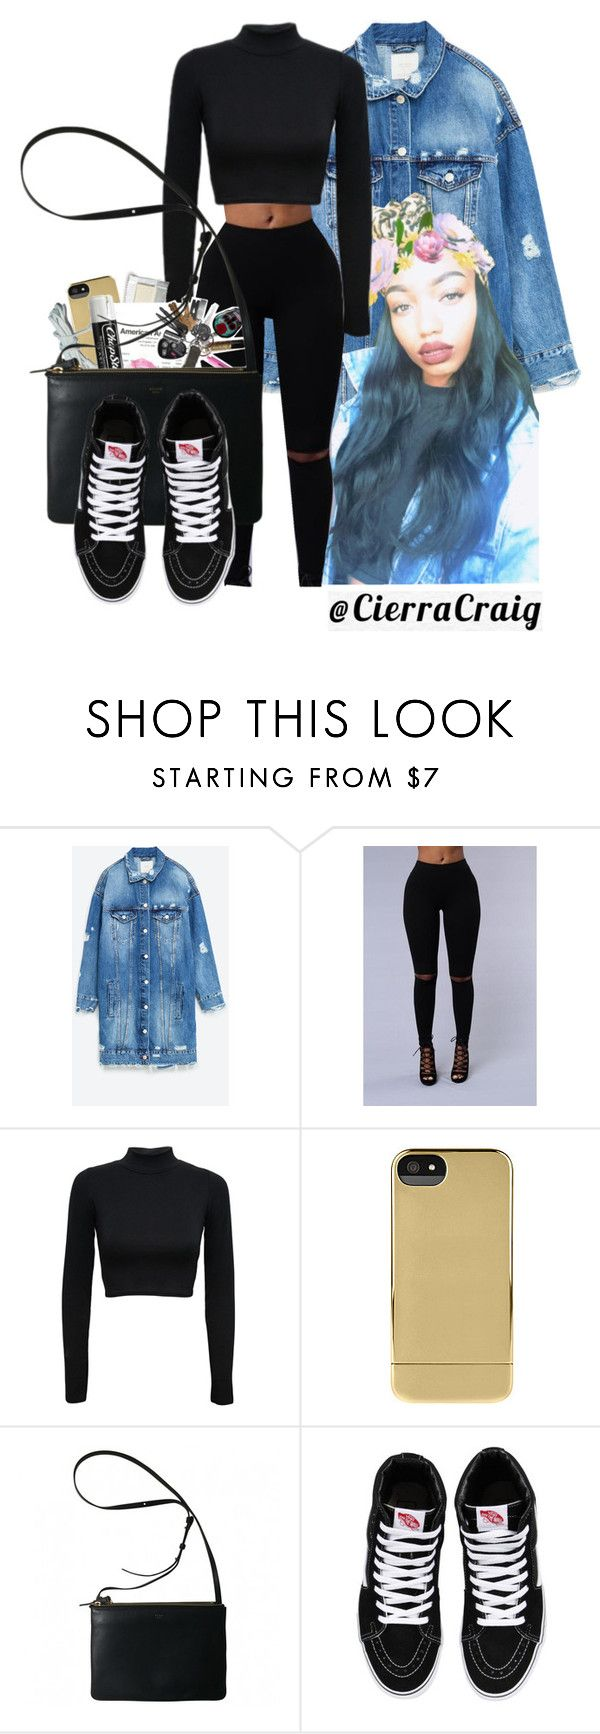 """My Closet"" by cierracraig ❤ liked on Polyvore featuring Jakke, WearAll, Incase, KEEP ME, Chapstick and Vans"